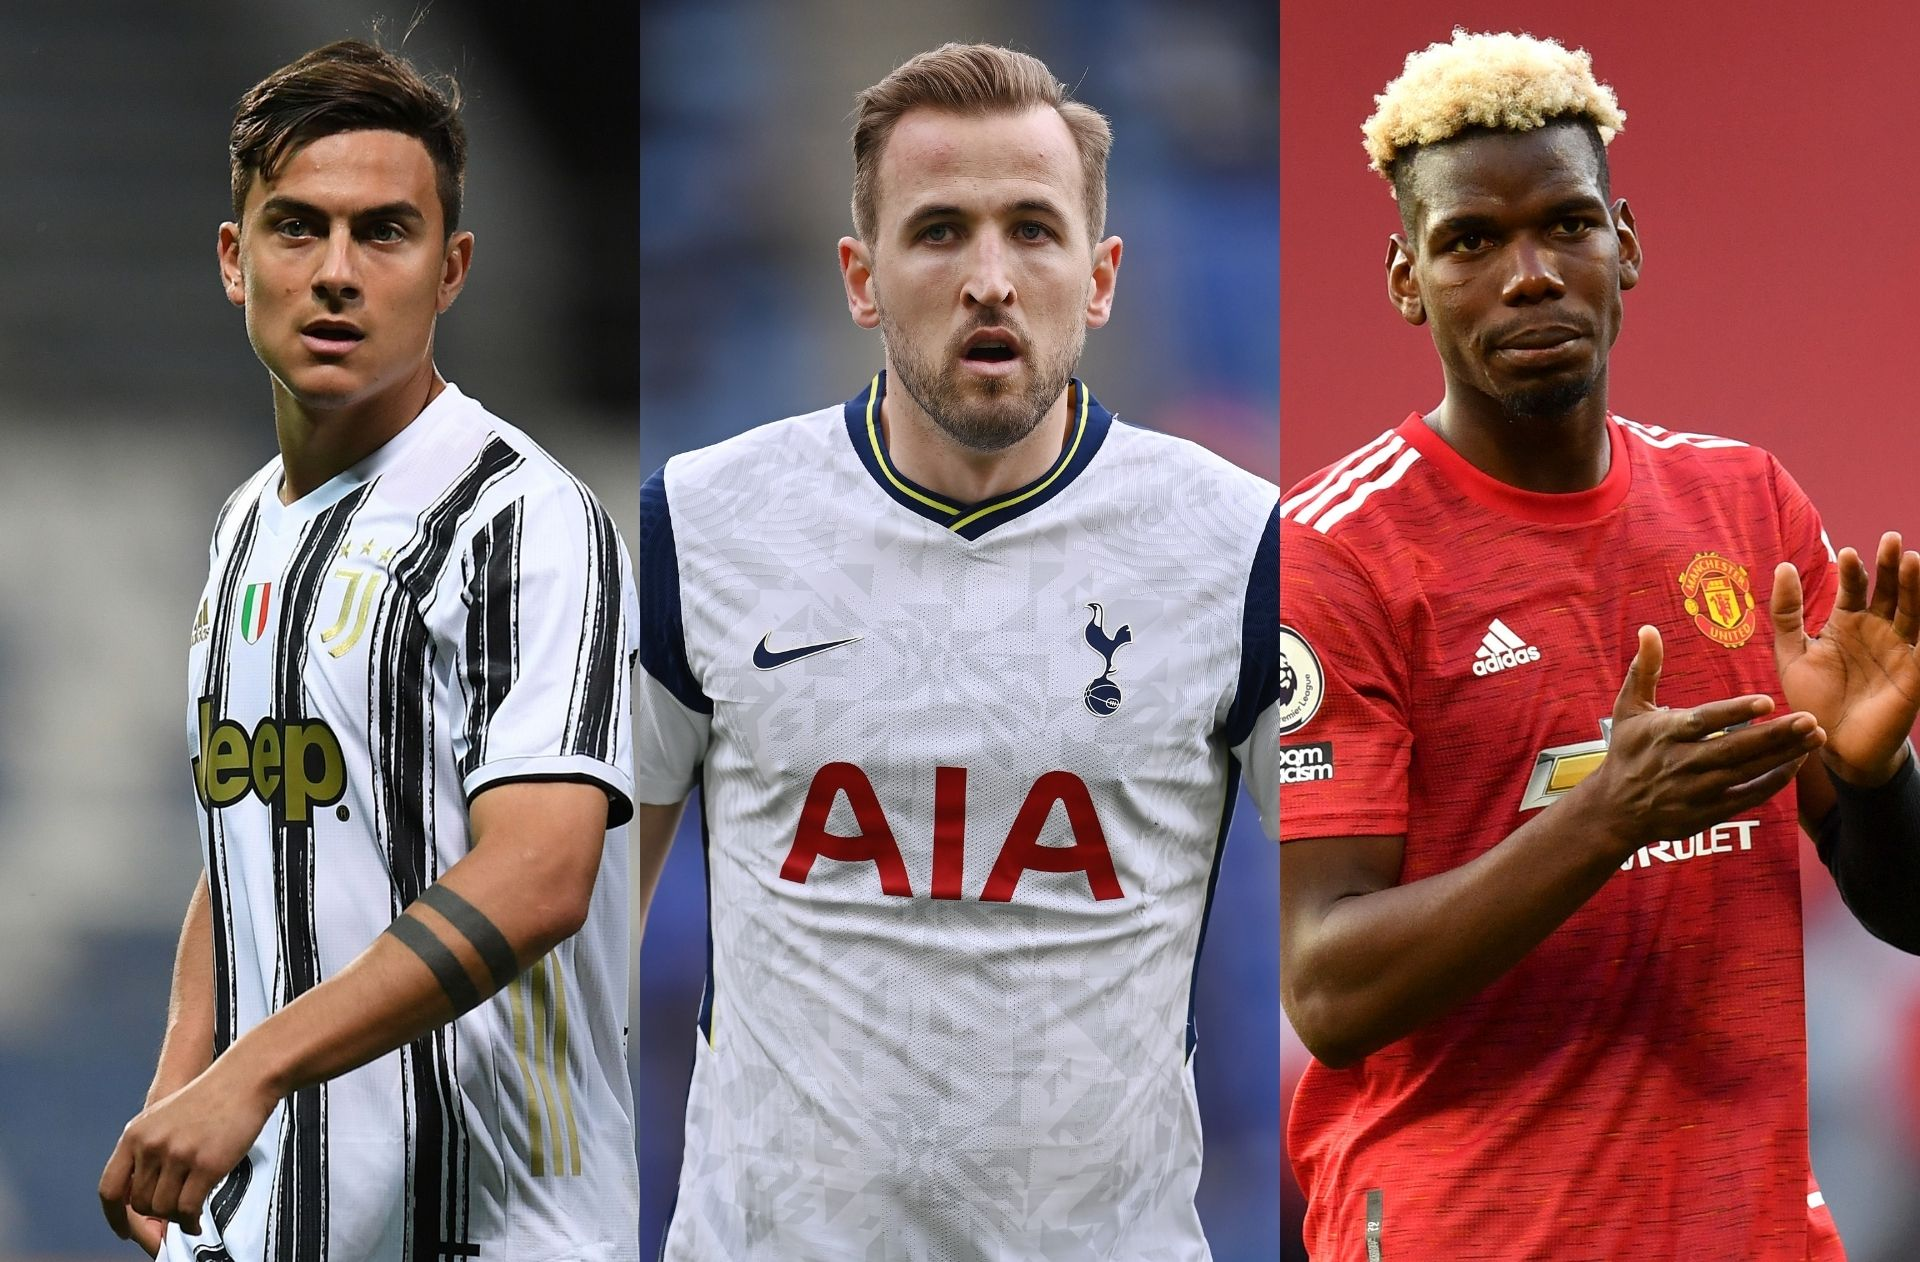 Friday's transfer rumors - Man City to offer one of four players for Kane